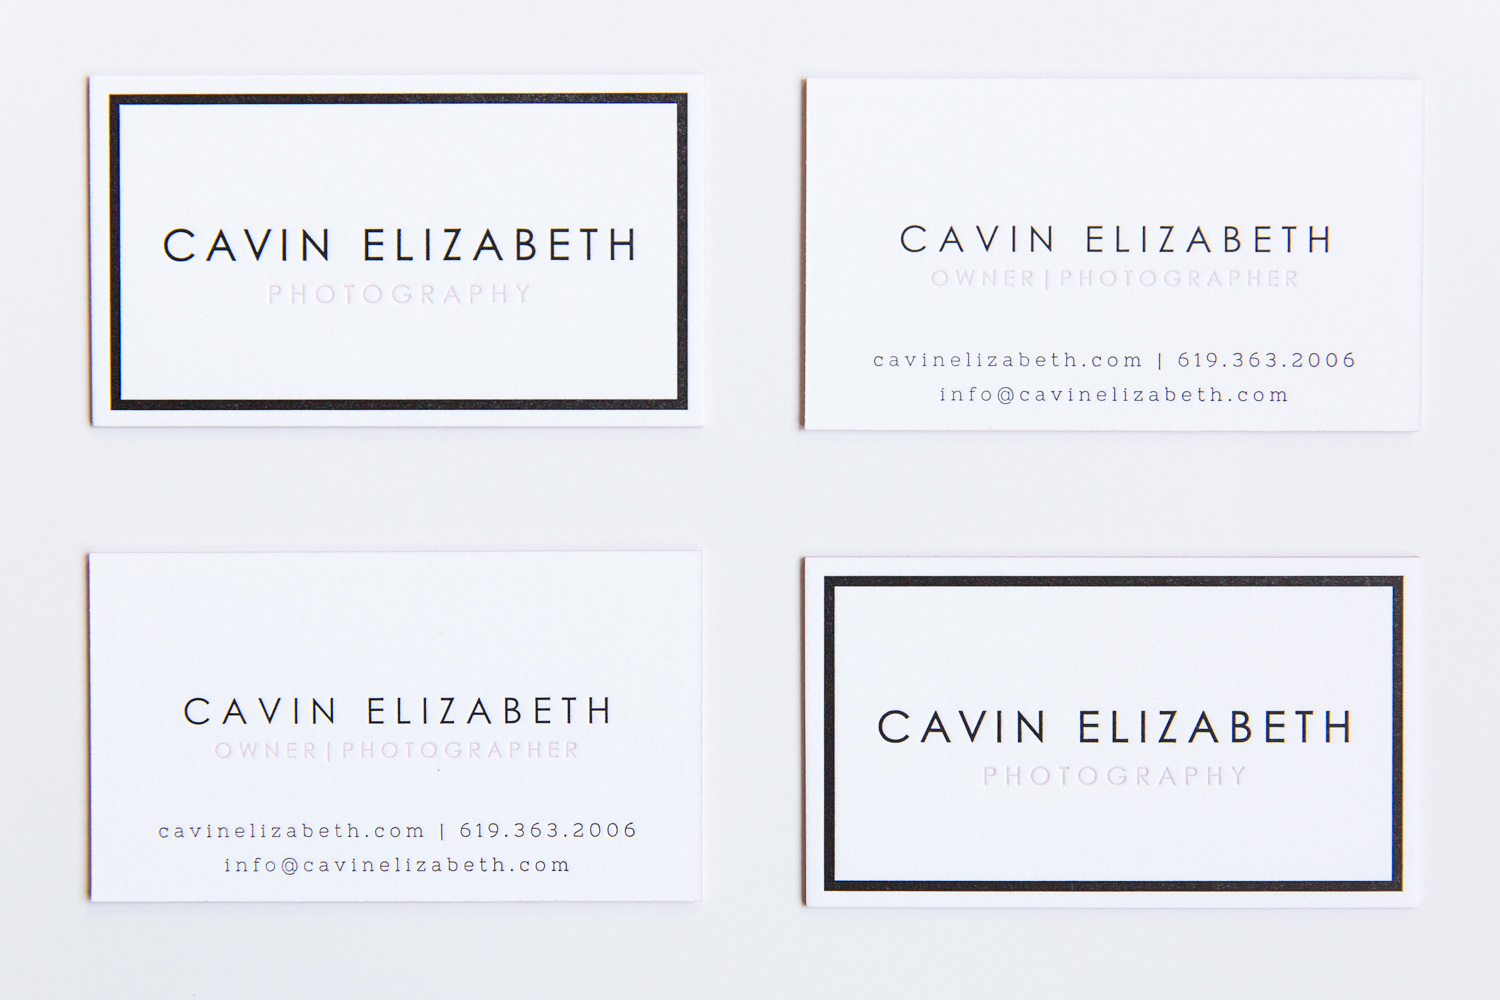 Cavin elizabeth letterpress business cards clove st press gorgeous chic and feminine white letterpress business cards with a black inset border and black and reheart Gallery